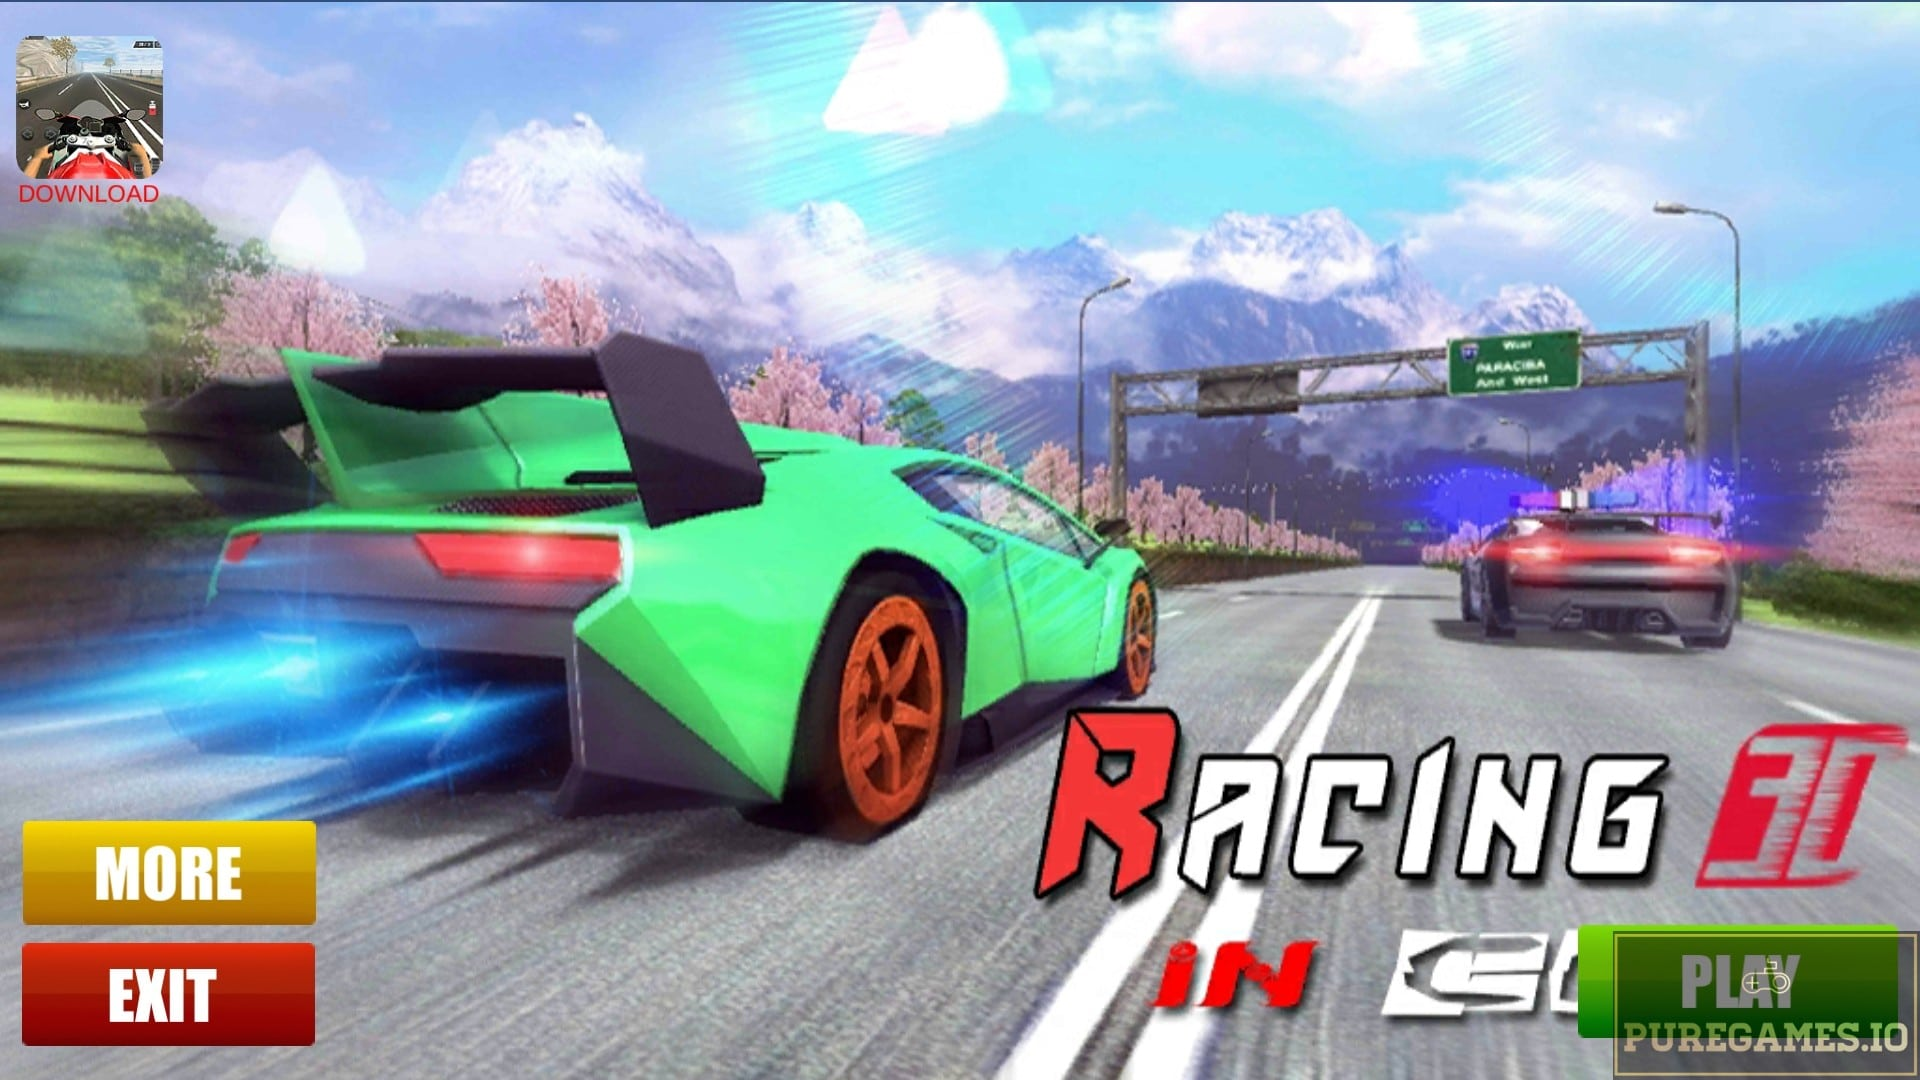 Download Racing In Car 3D APK - For Android 5